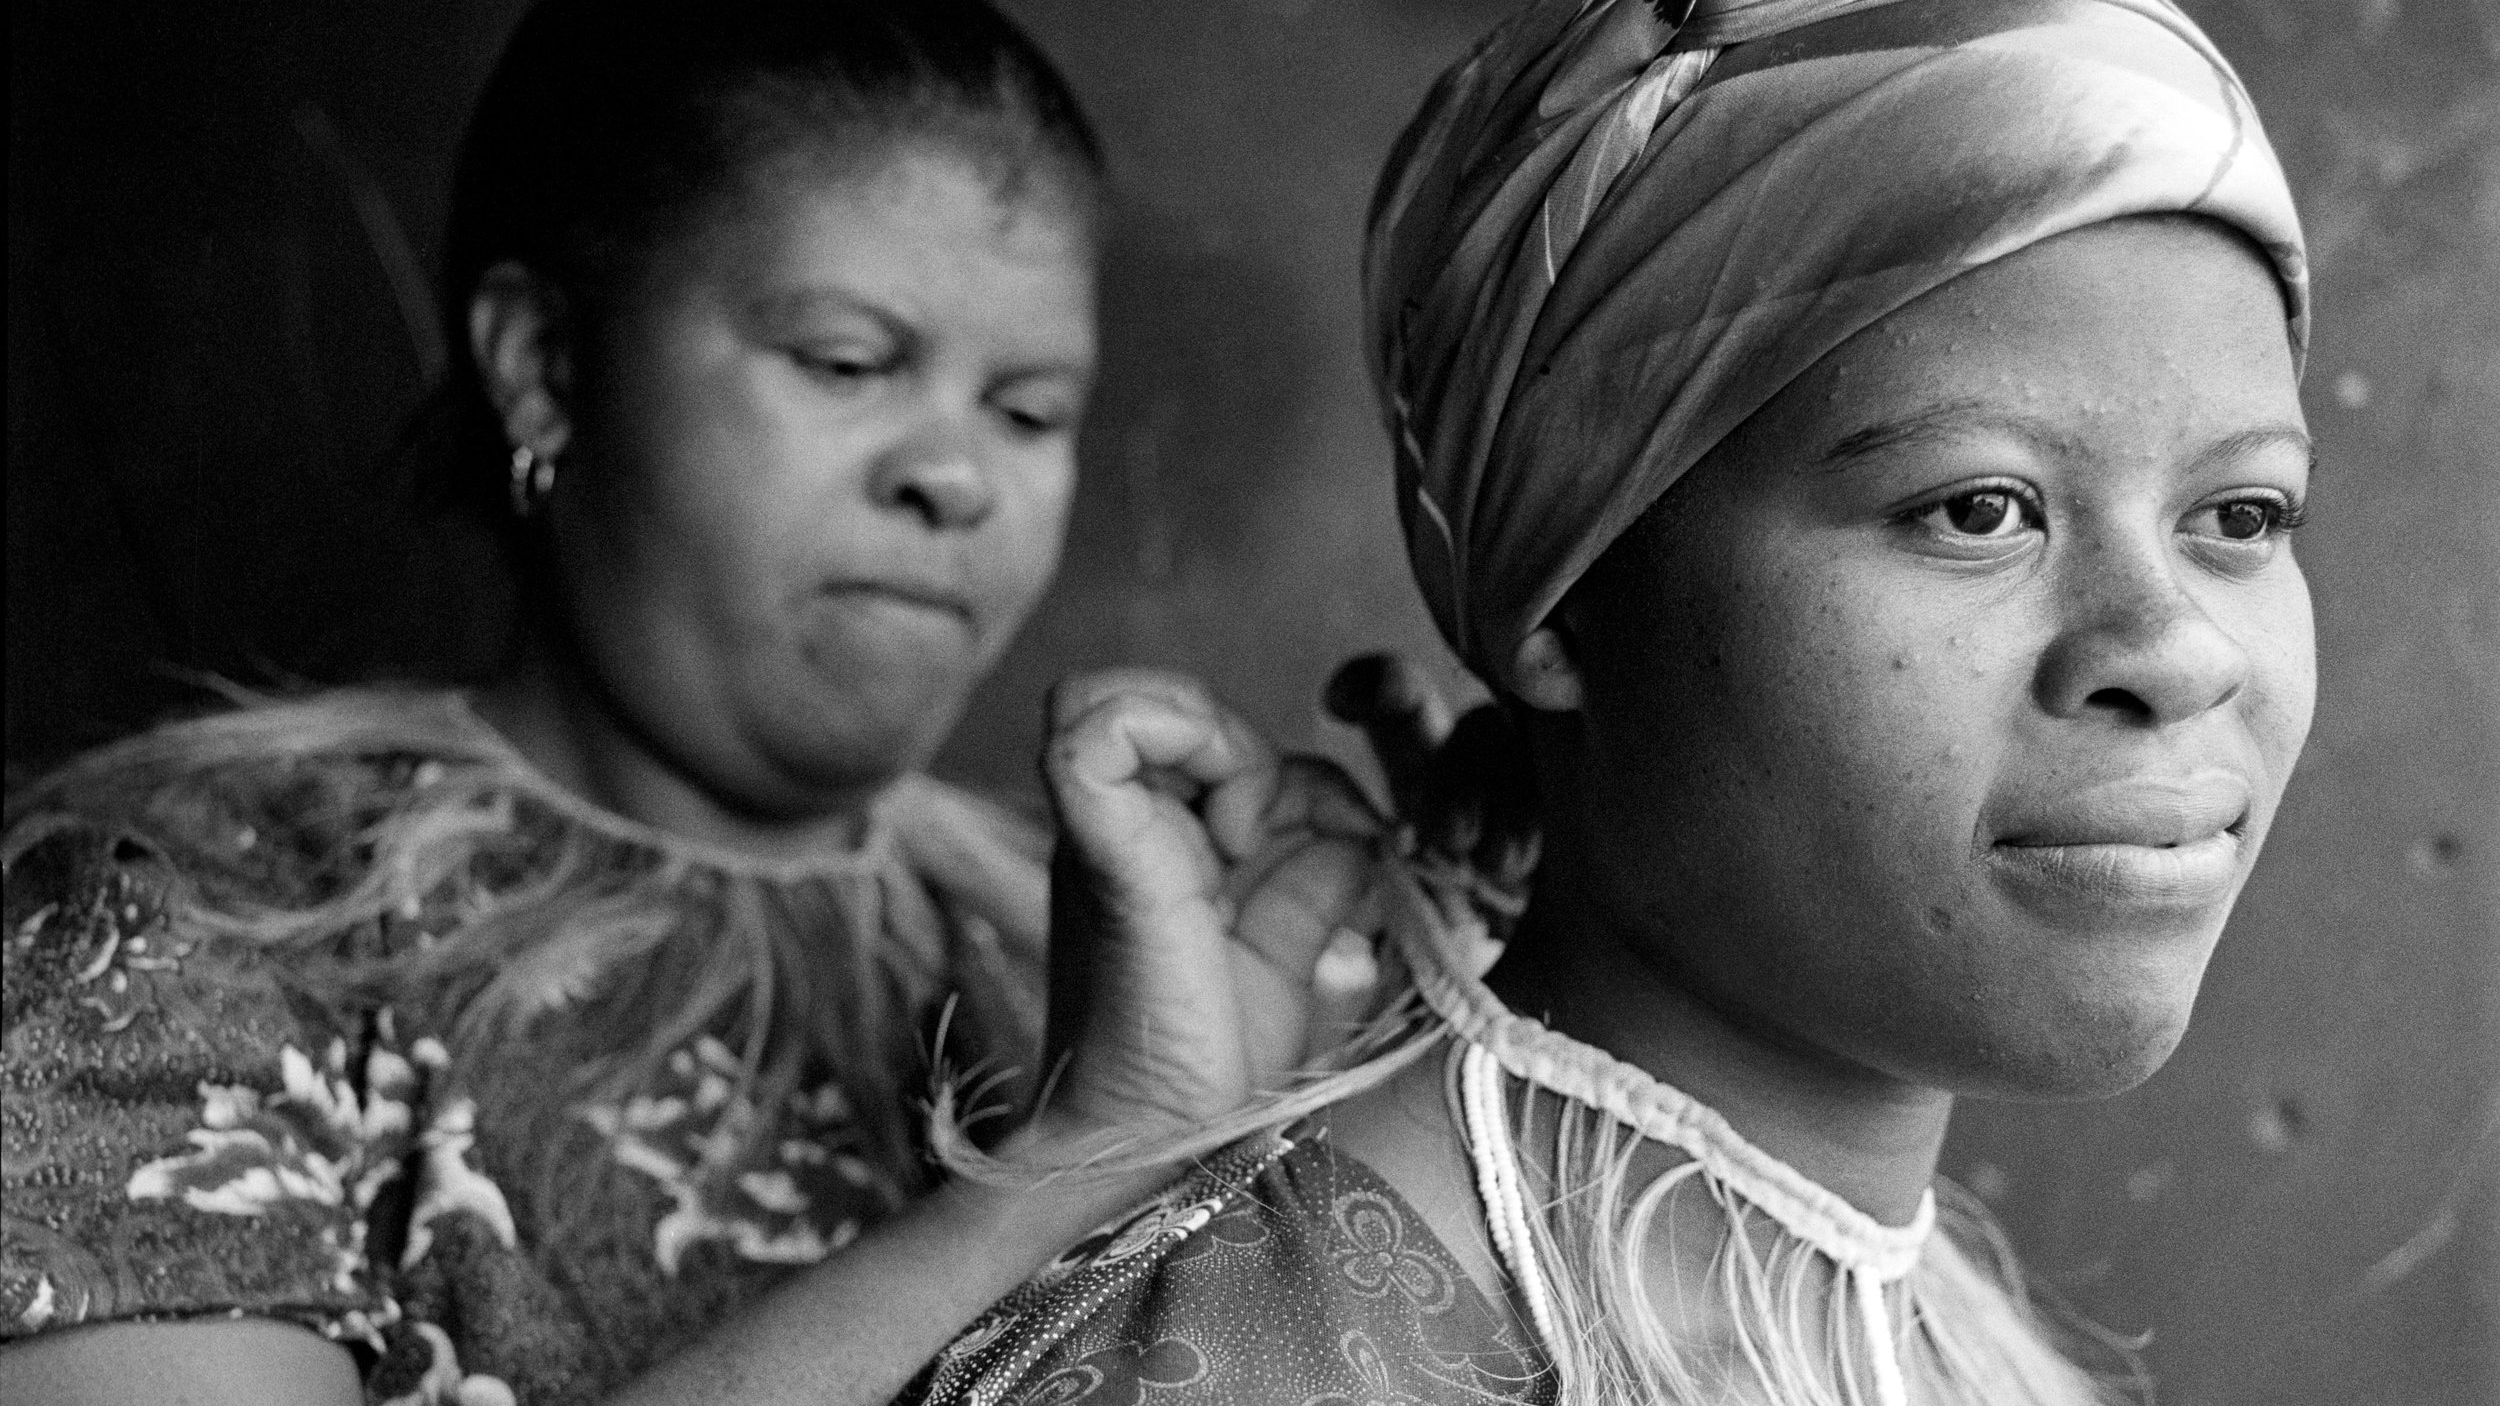 A MOTHER AND DAUGHTER FEATURED IN ANNE REARICK'S PHOTOGRAPHY BOOK  TOWNSHIP . CREDIT: ANNE REARICK